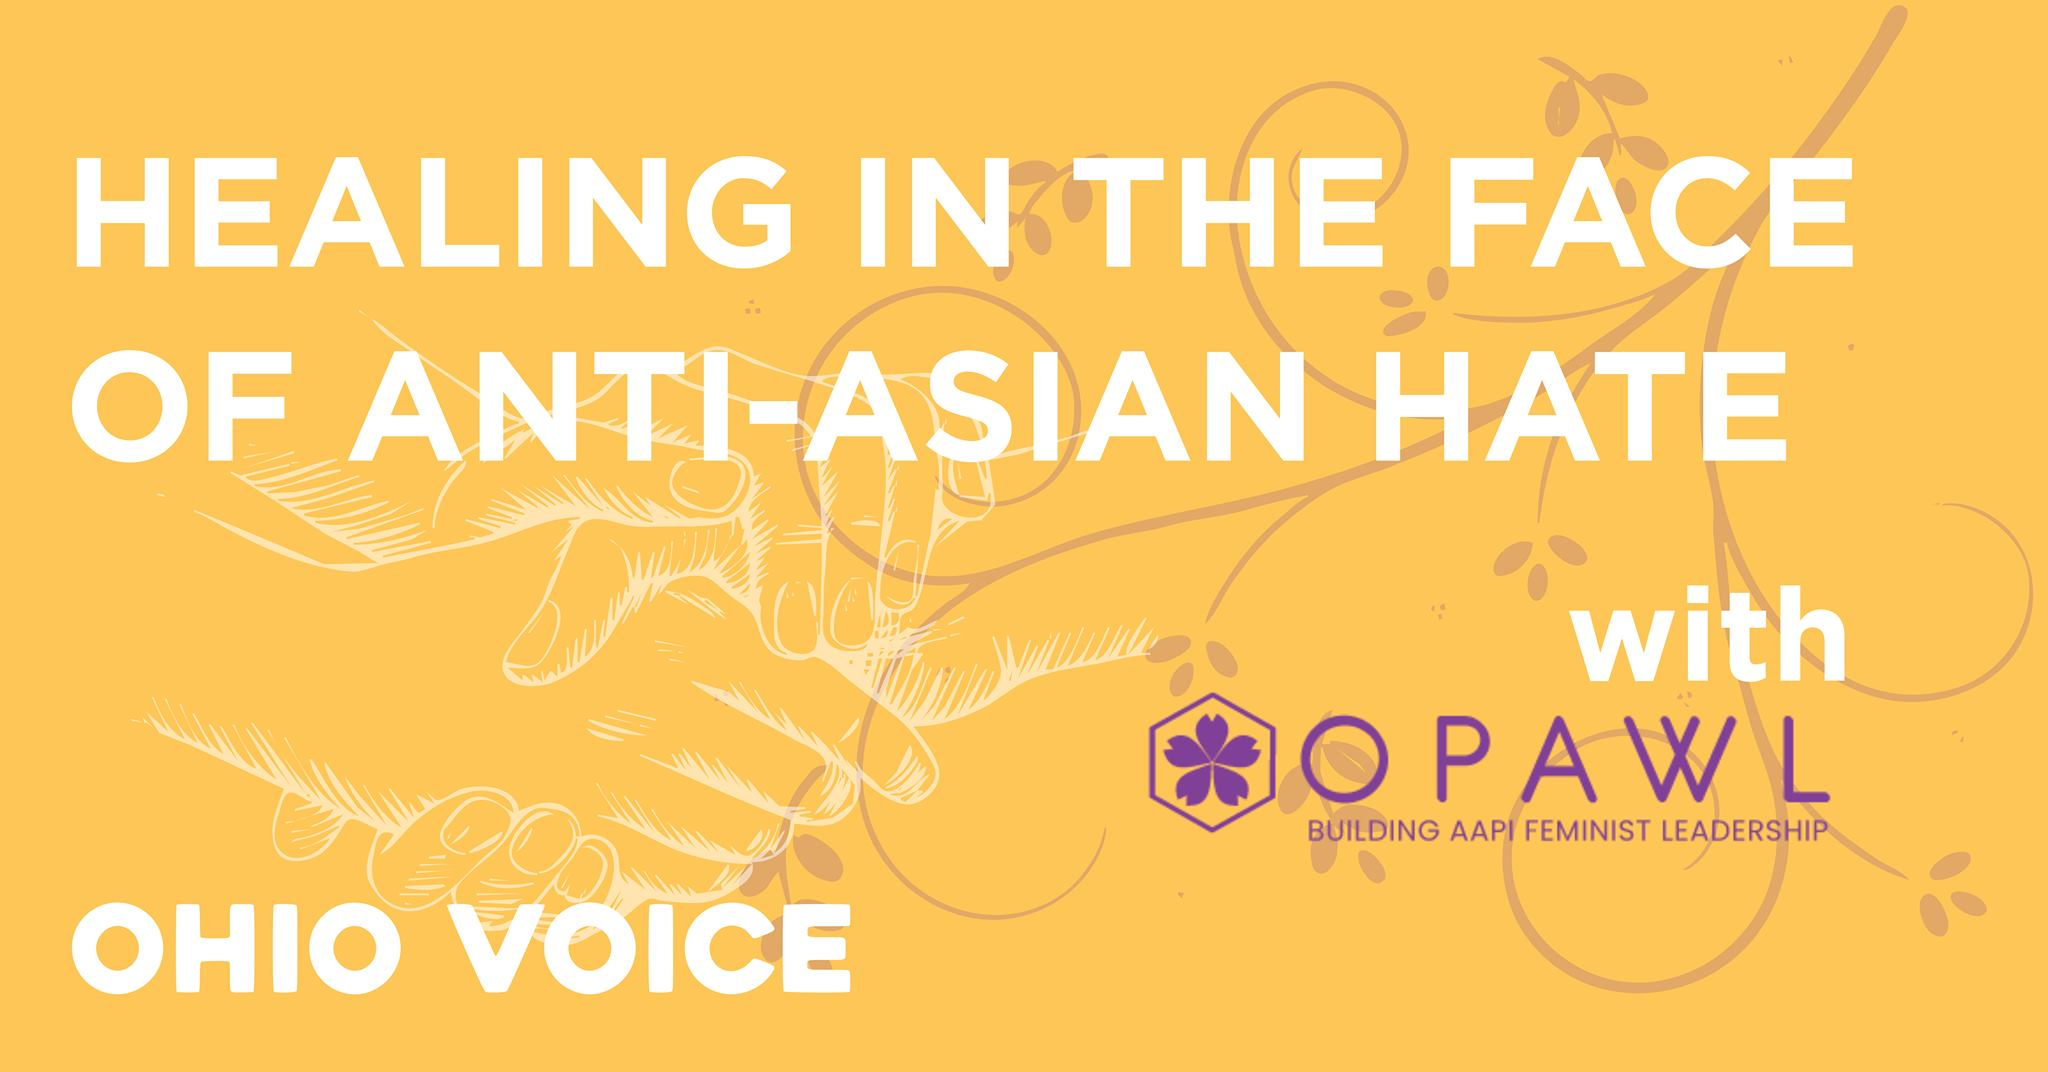 Healing in the face of anti-Asian hate with OPAWL and Ohio Voice